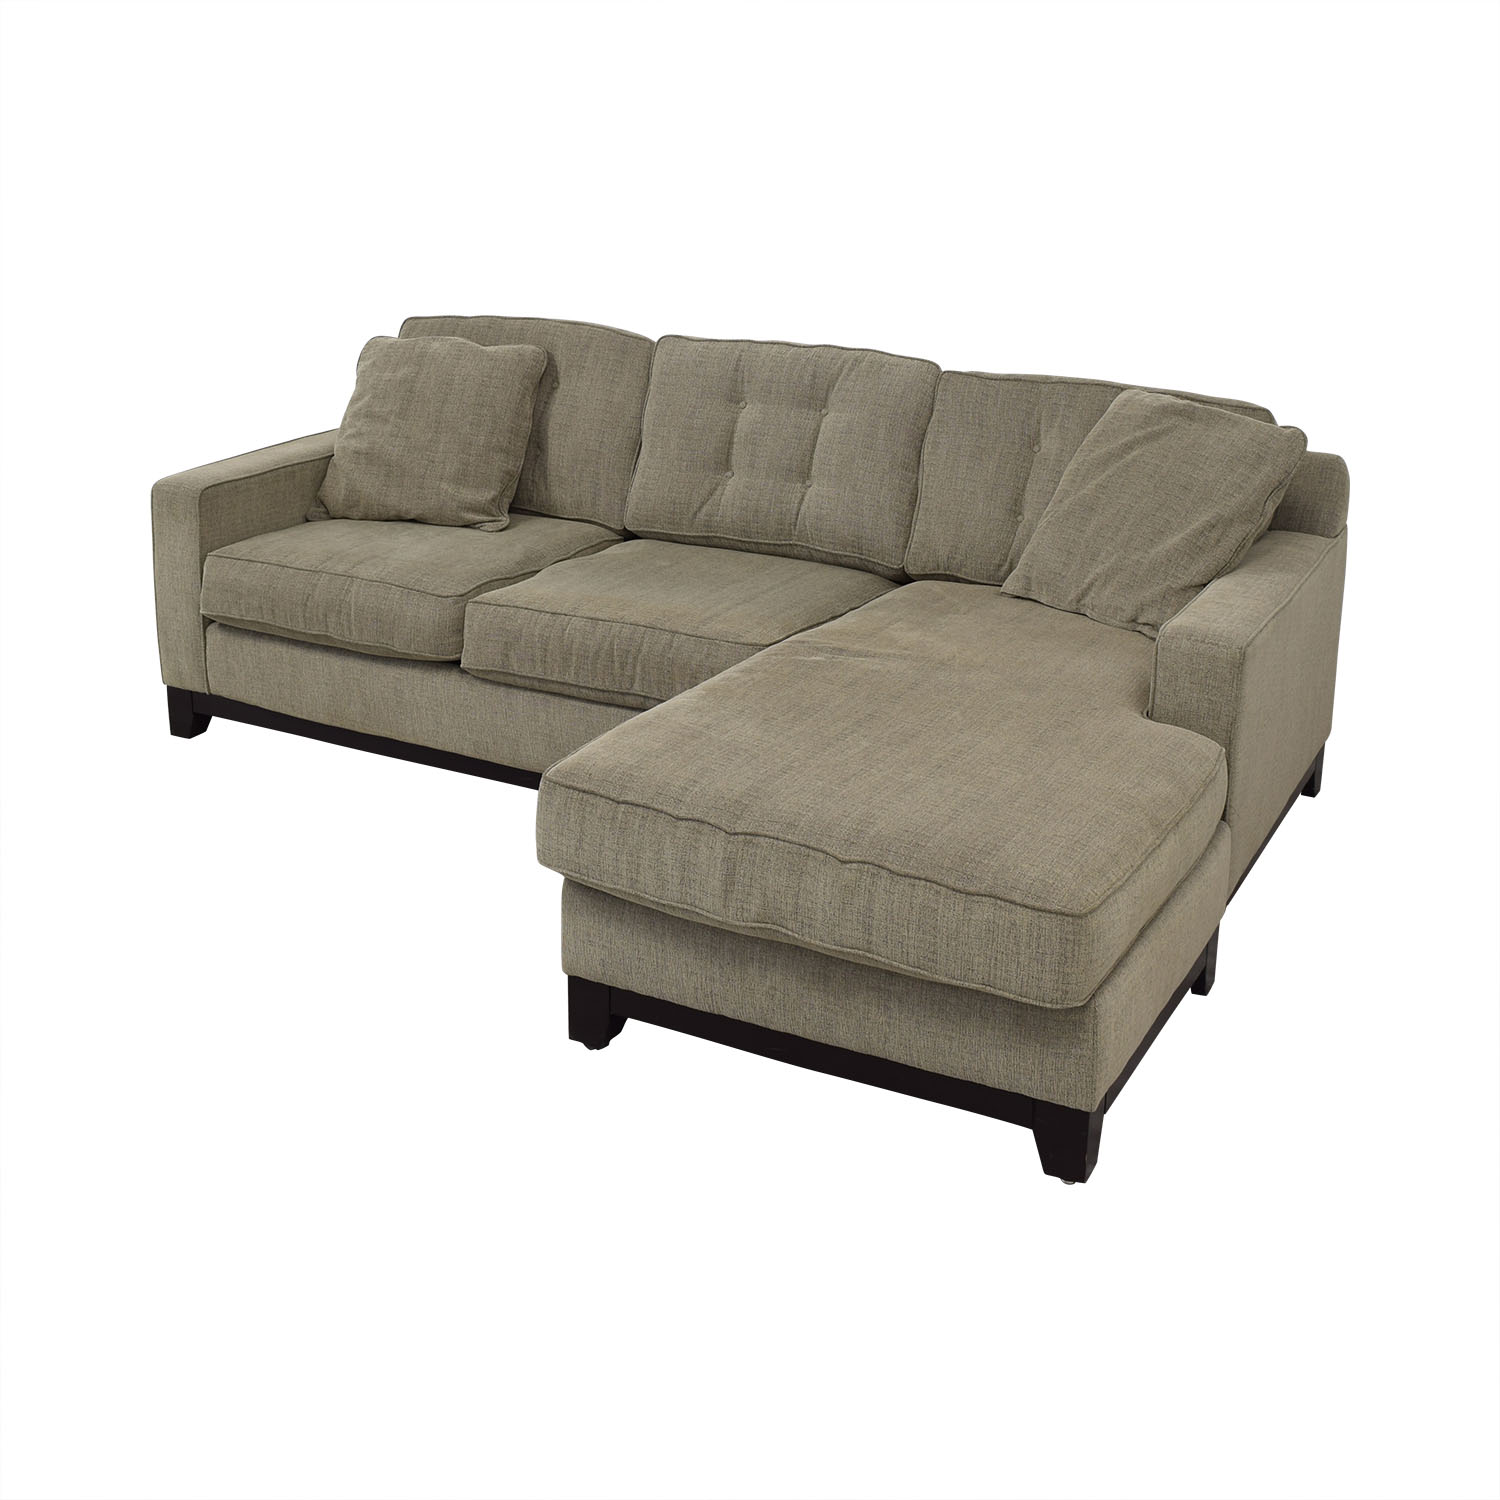 shop Macy's Macy's Grey Semi-Tufted Chaise Sectional online